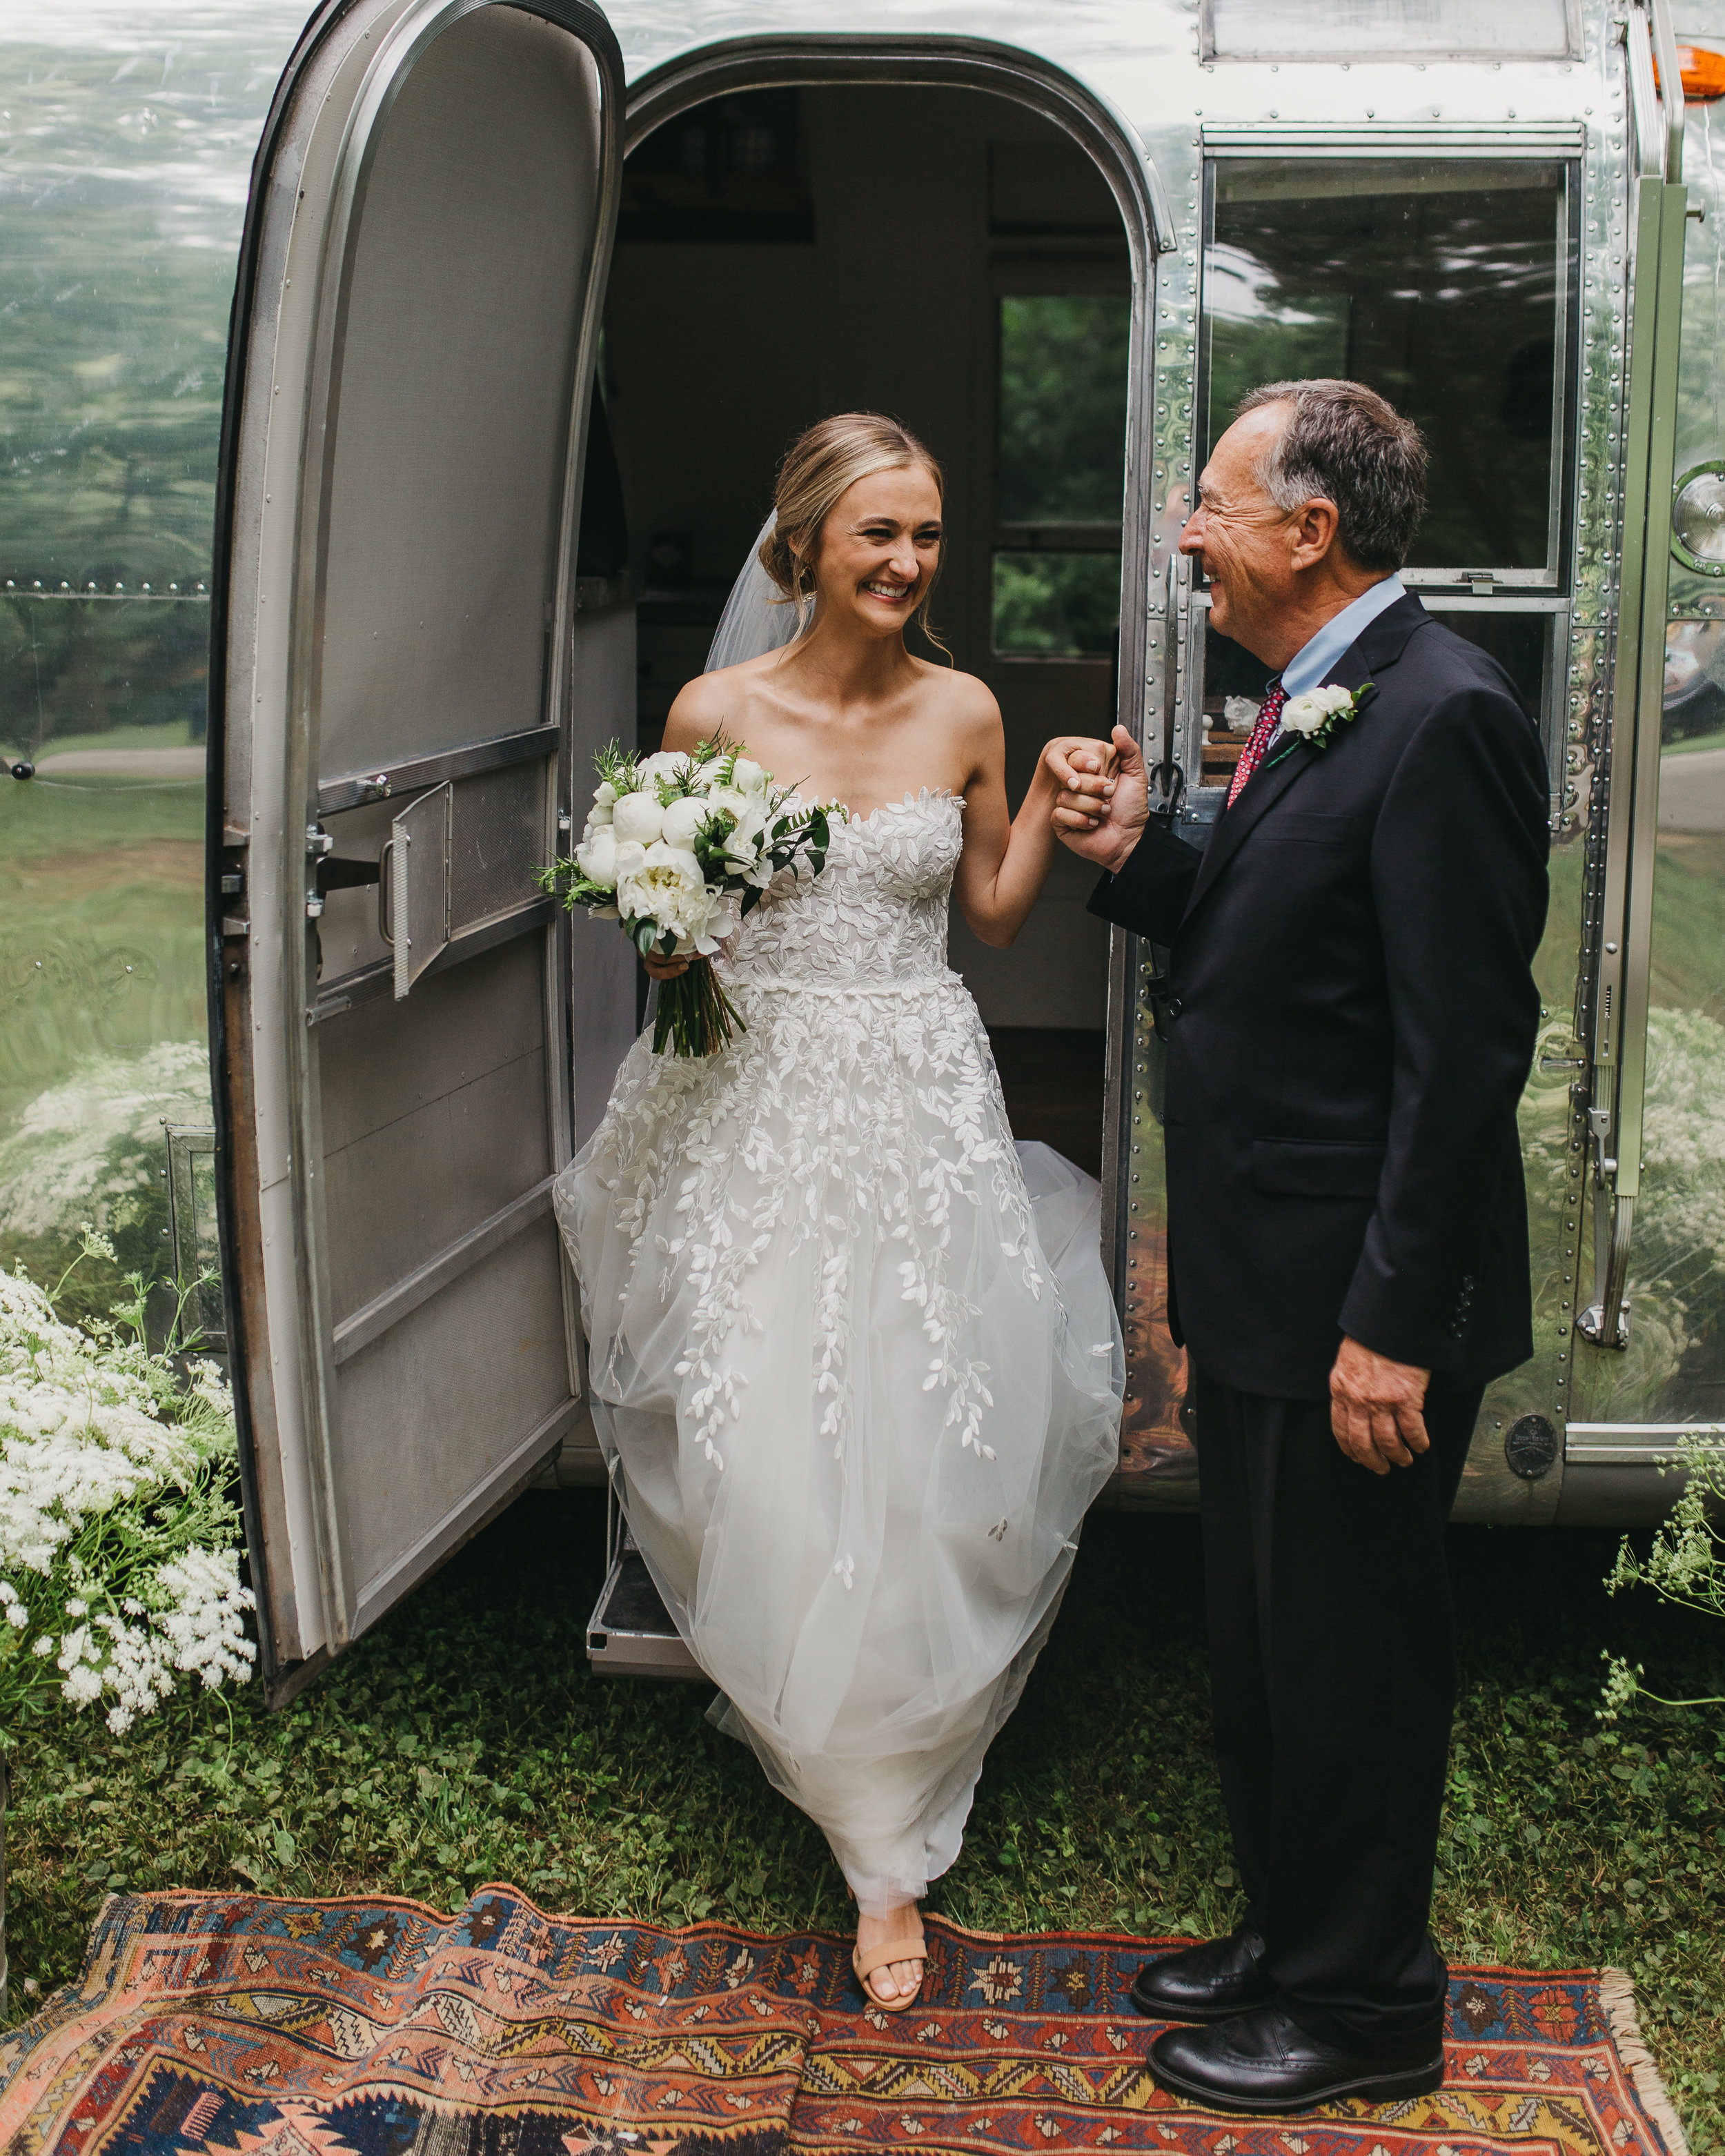 bridal processional from airstream camper on wedding day